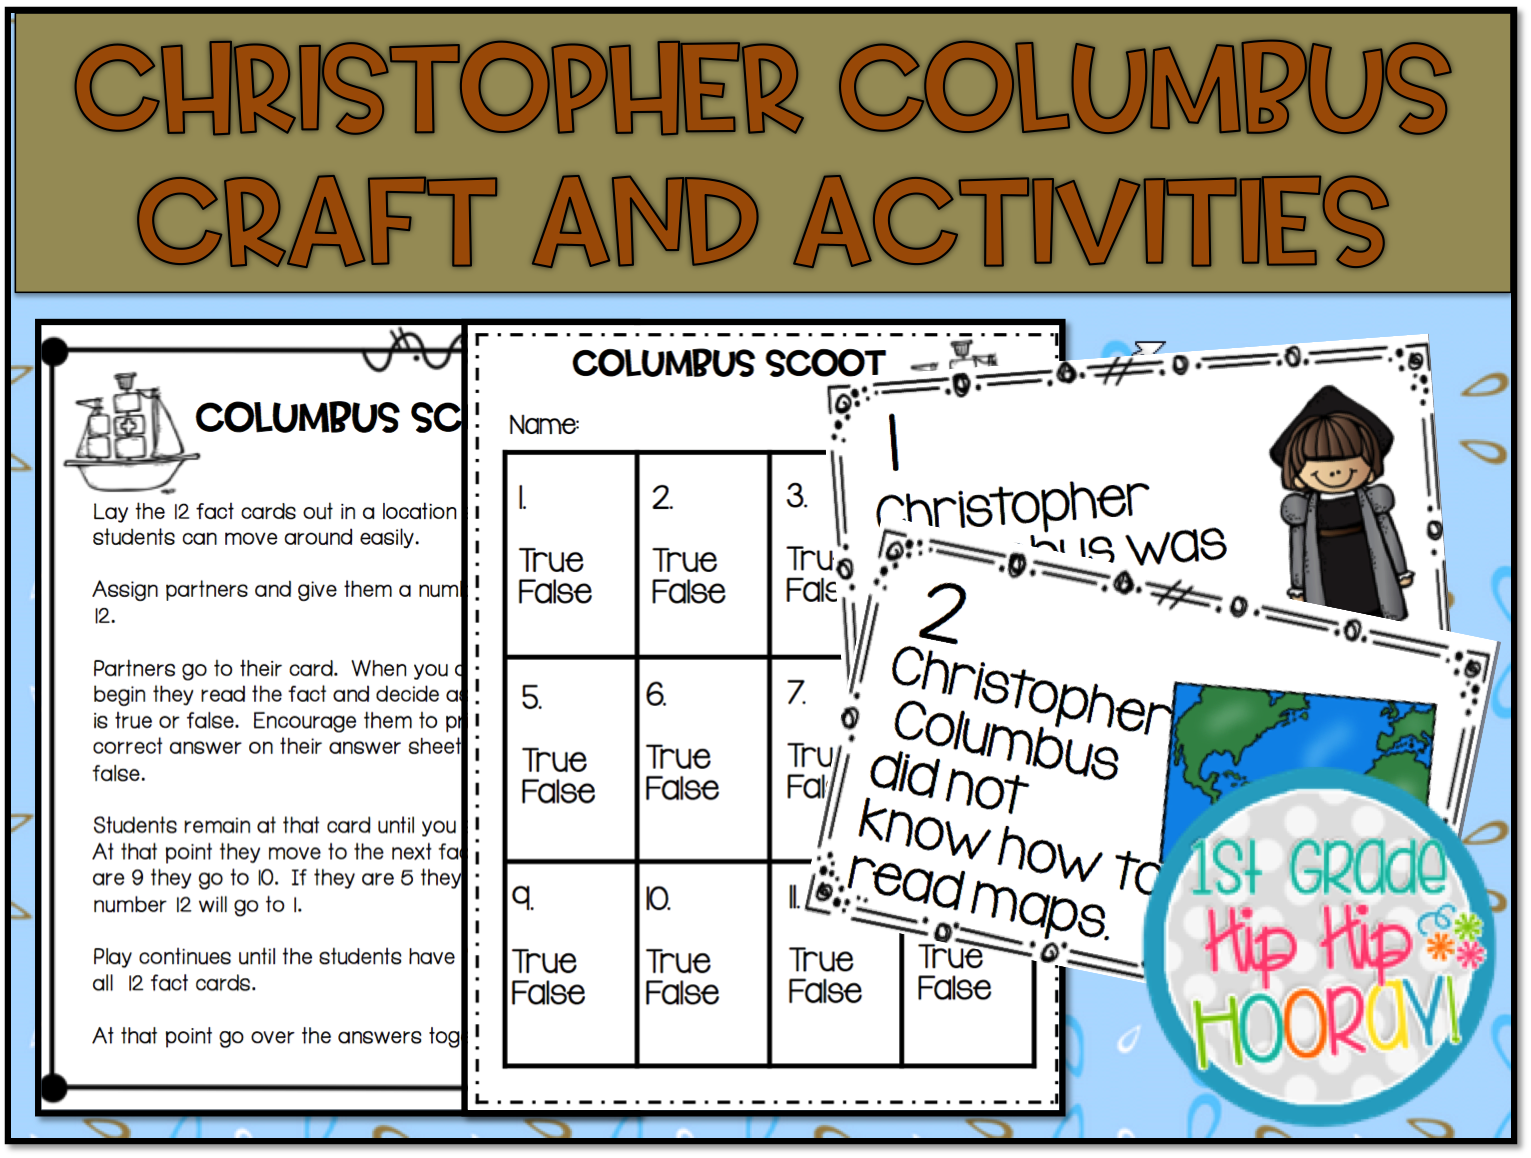 1st Grade Hip Hip Hooray Christopher Columbus